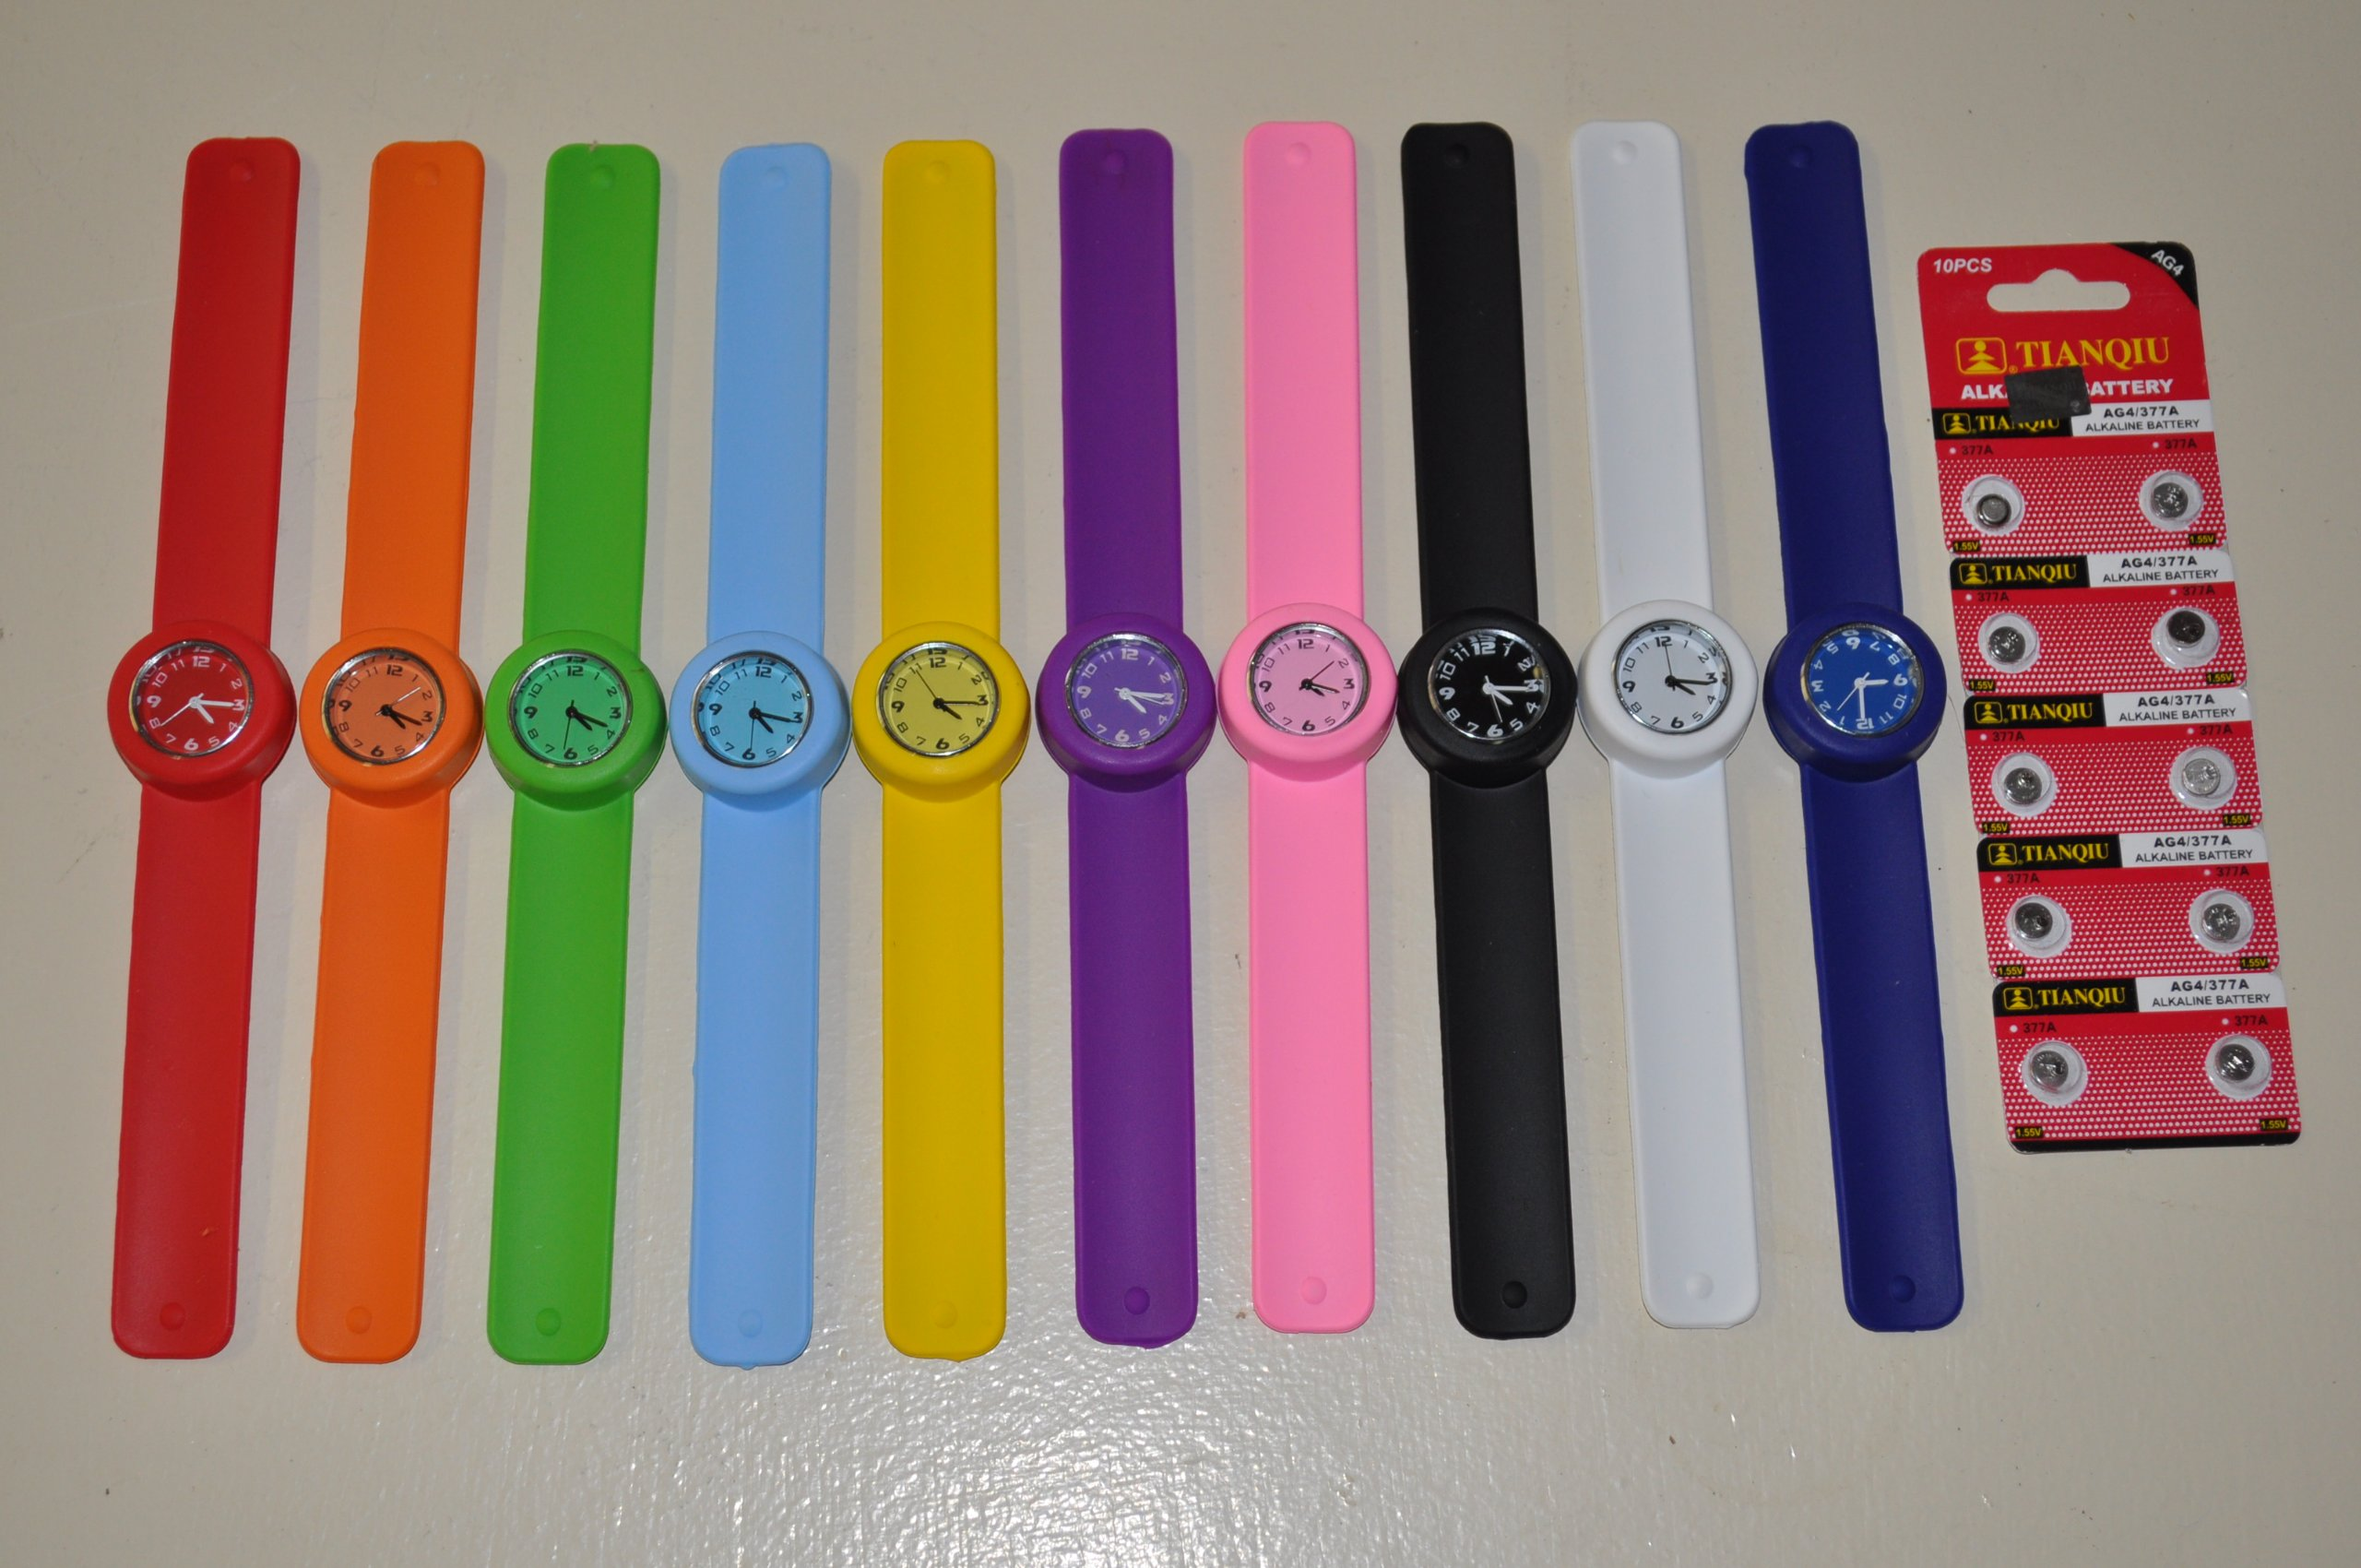 10 Kids/Ladies Slap Watch set Wholesale Lot - Full face with all 12 numbers Party Favor idea!